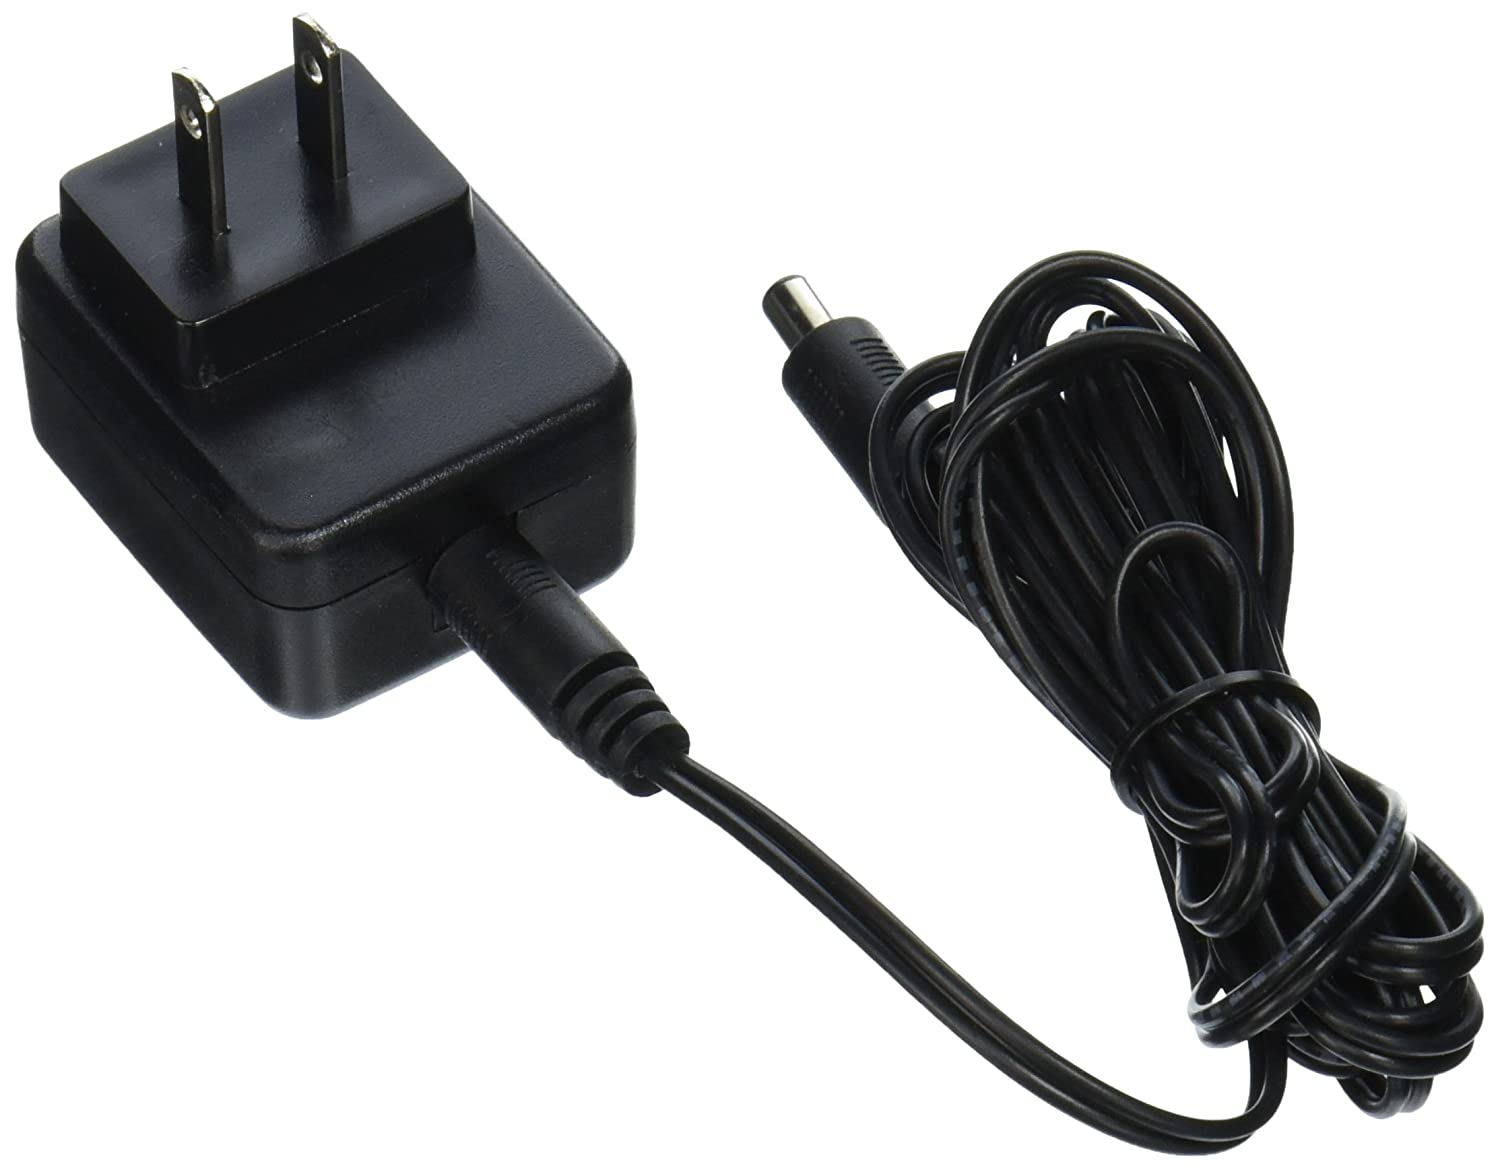 Lightshare Power Adapter for Lighted Bonsai Tree (6V) E Home International BYQ6V